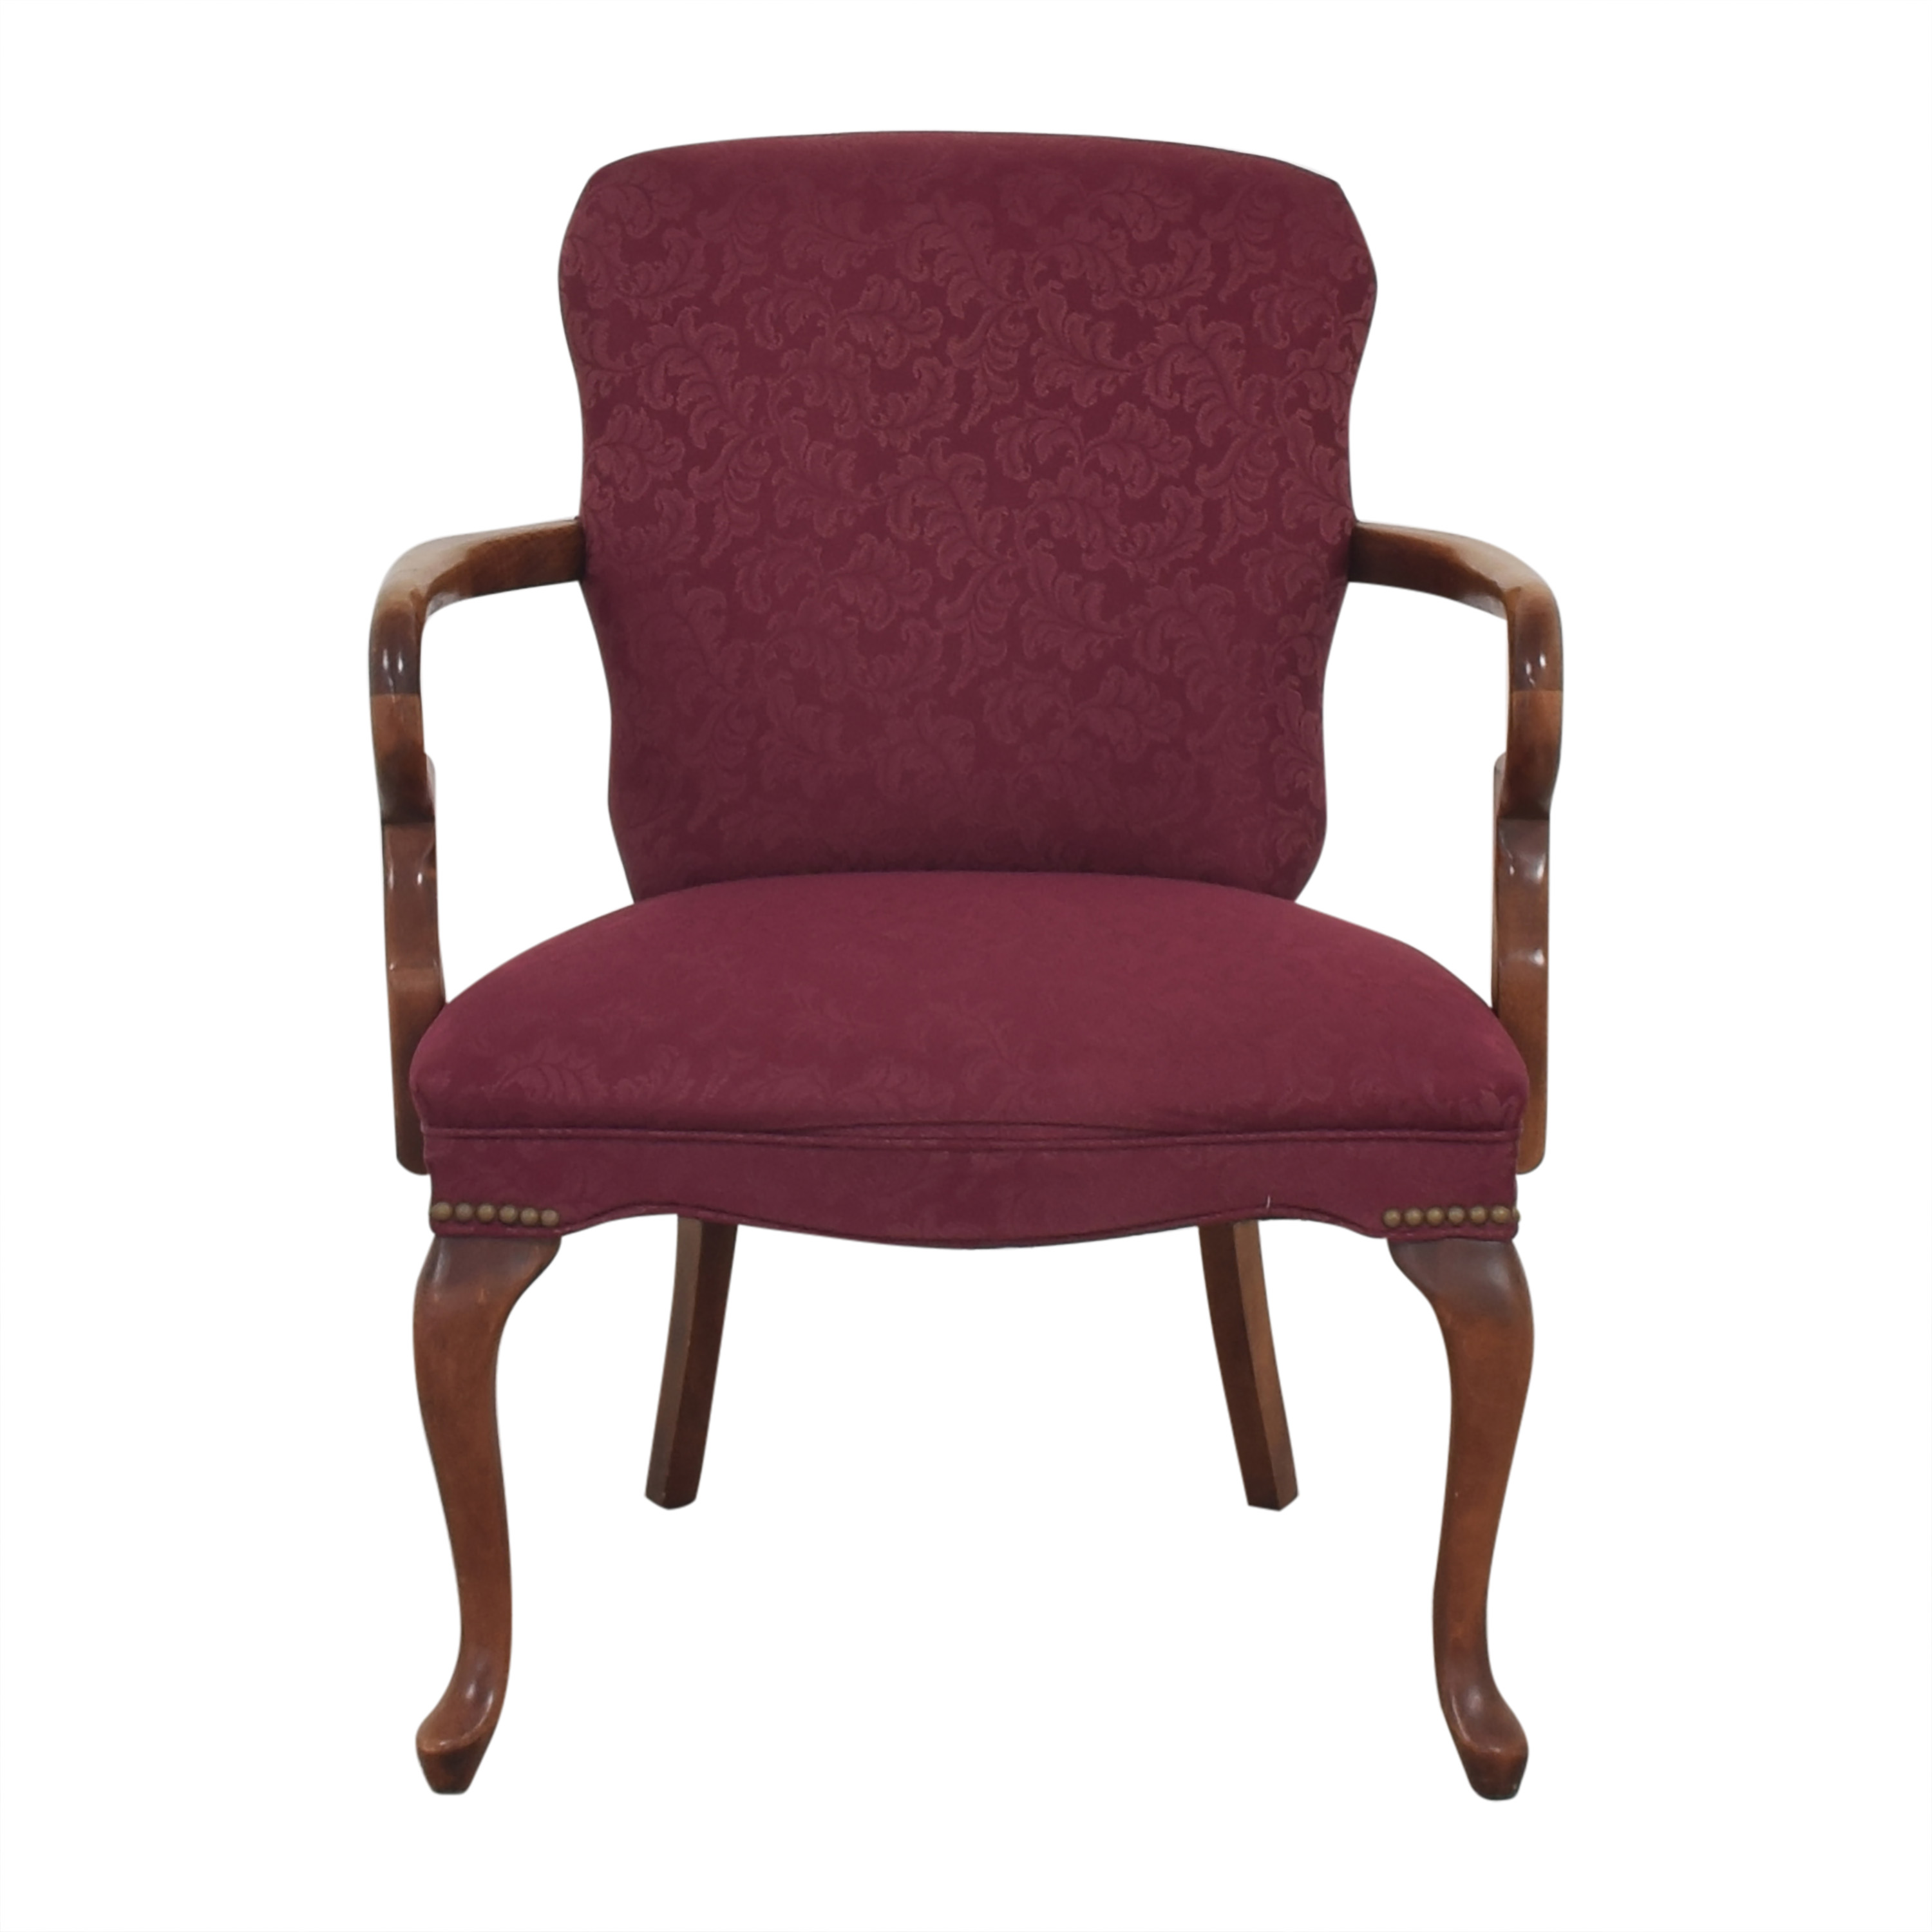 shop Ethan Allen Ethan Allen Accent Chair online